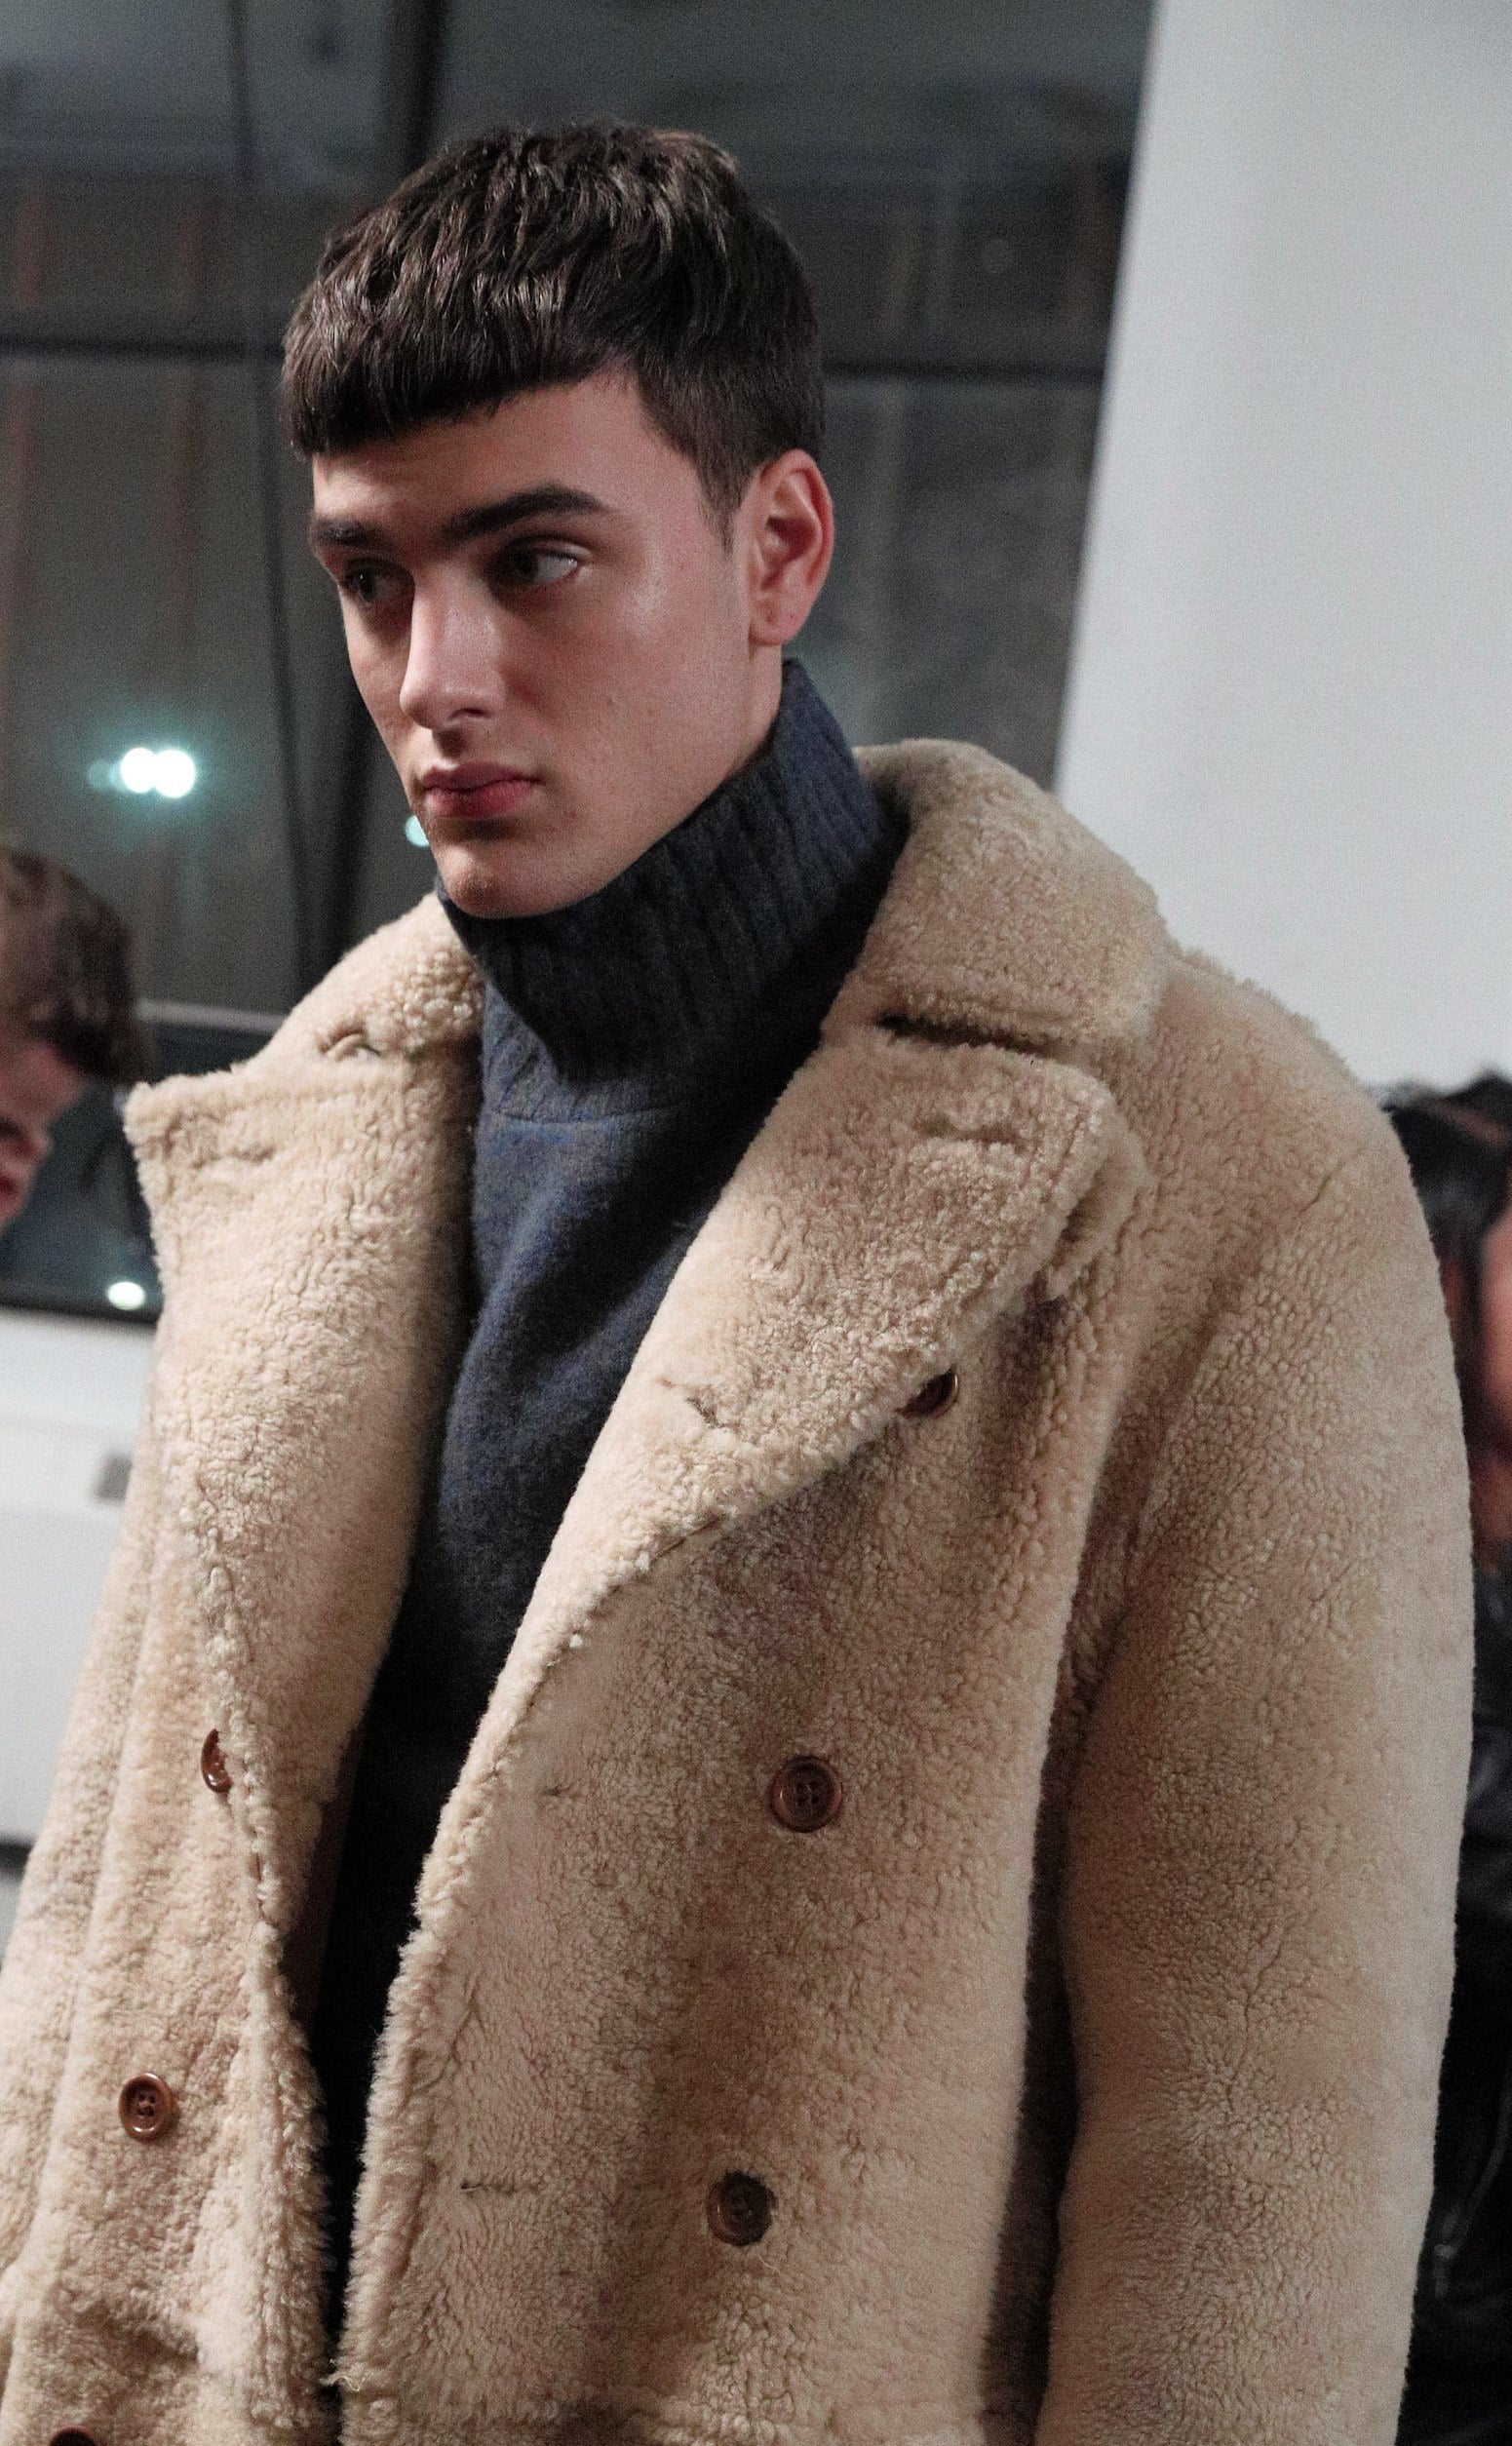 Crop haircut: male model wearing a big winter coat with his hair in a french crop style